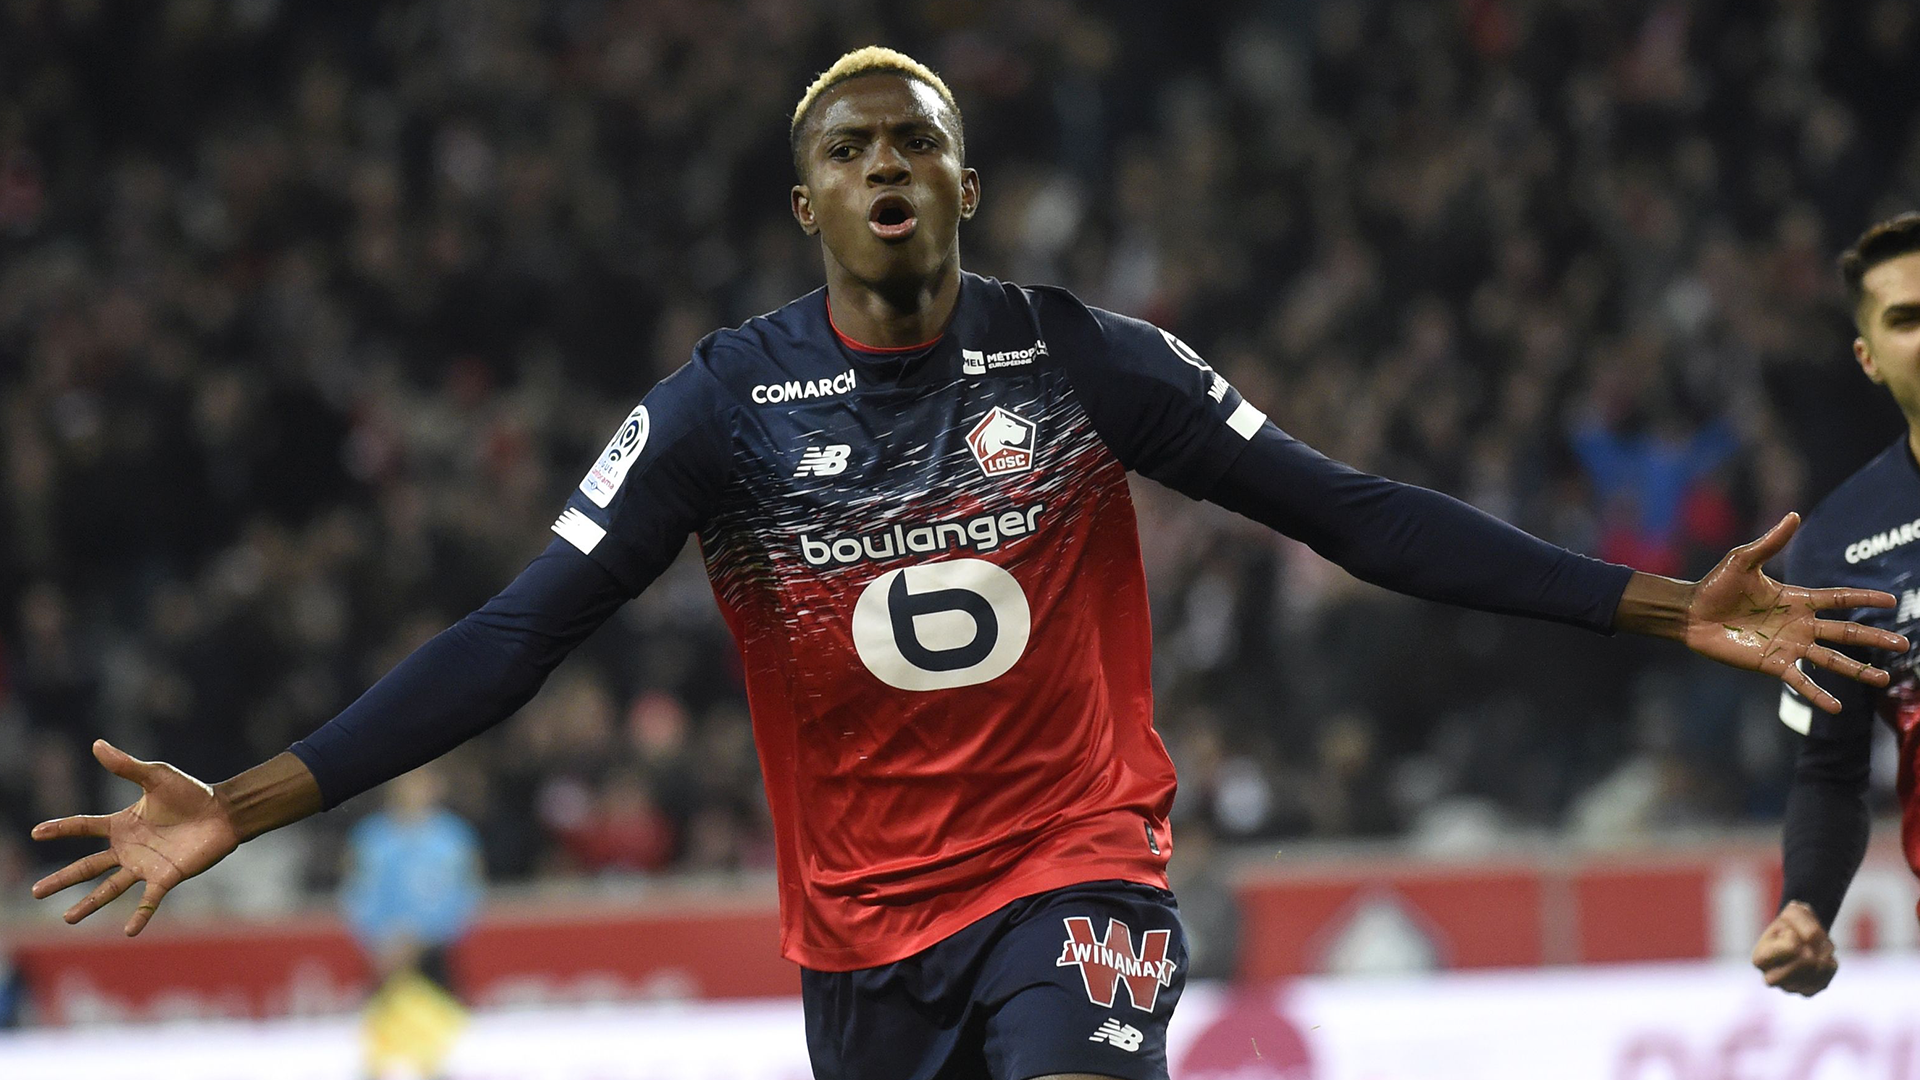 'Osimhen must always remain humble' – Oliseh advises Lille star after winning Marc Vivien Foe prize